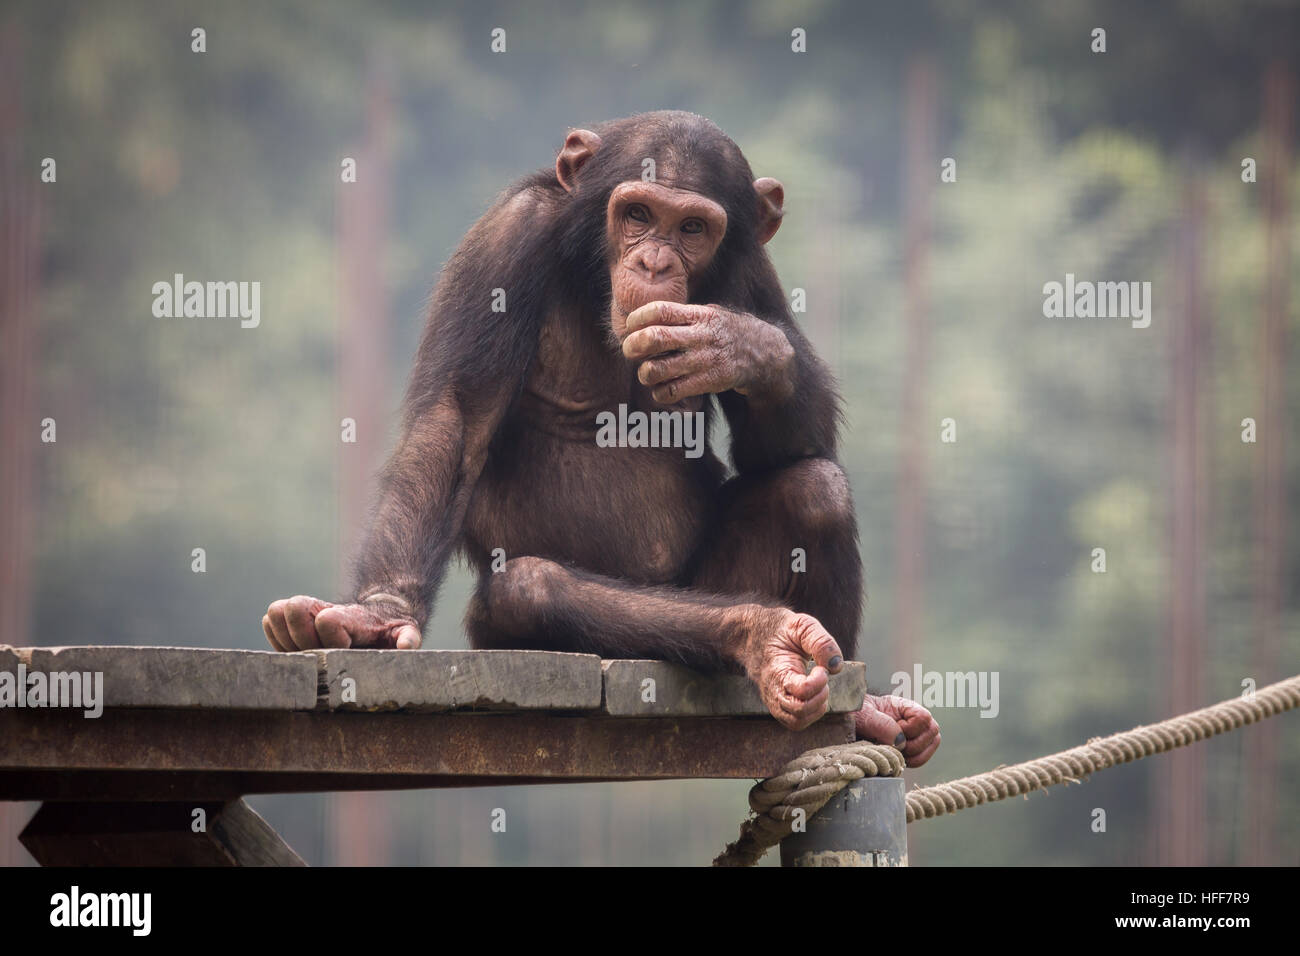 Baby Chimpanzee with a thoughtful expression at a zoo in Kolkata